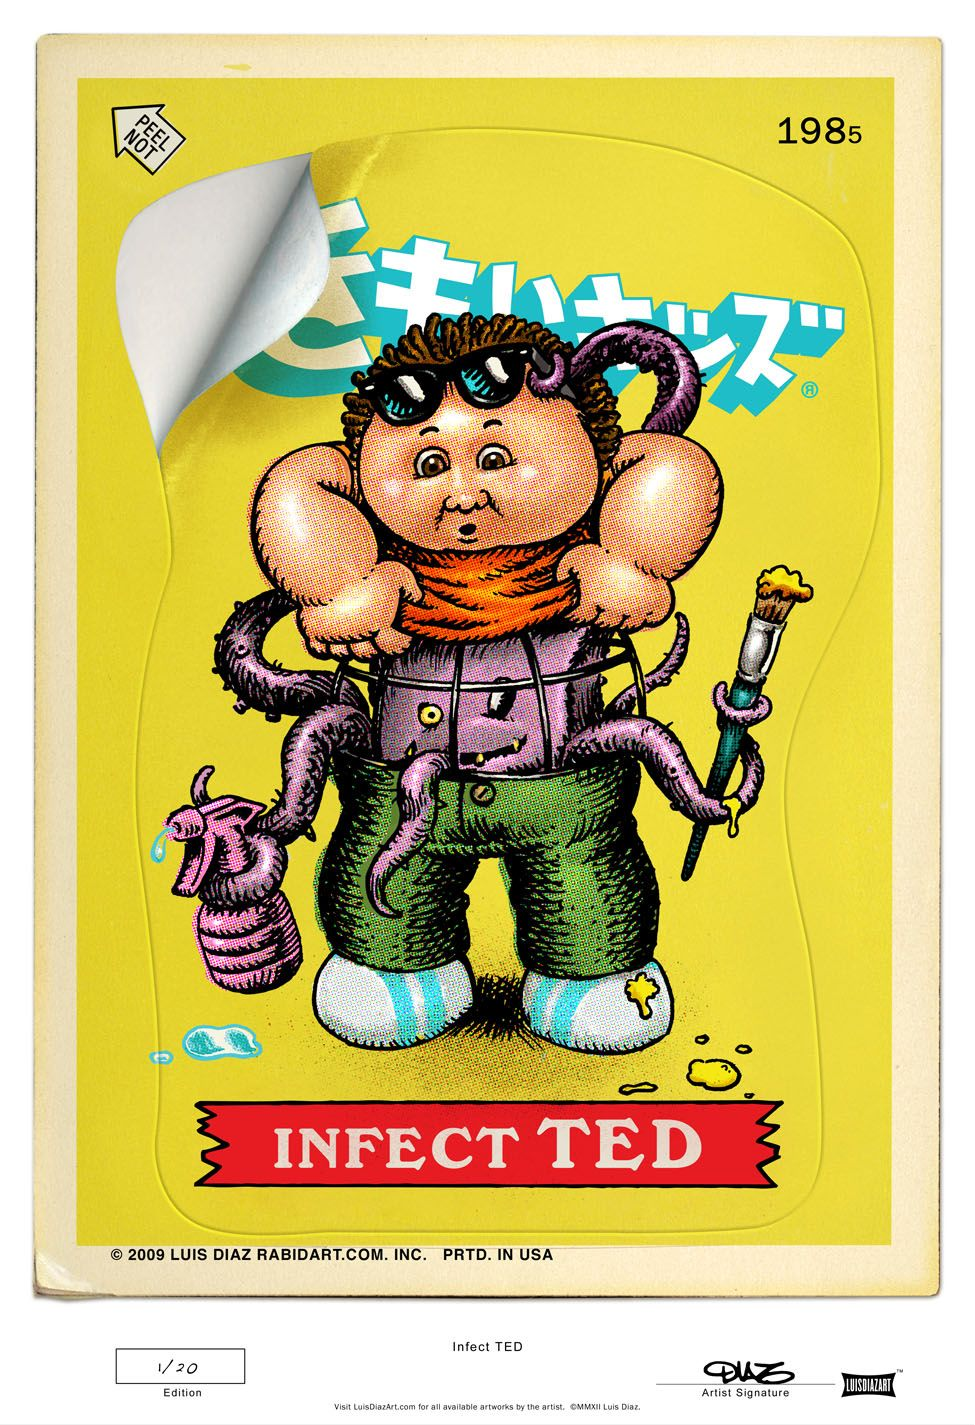 """<b>Here is """"Infect TED""""</b> Two versions are available.   24a has a yellow background with the traditional Kimoi Kizzu (disgusting kids) logo.  24b has the red background with the classic rainbow style logo.  Each artwork is printed measuring 13"""" x 19"""" and each version is limited to 20. ..."""